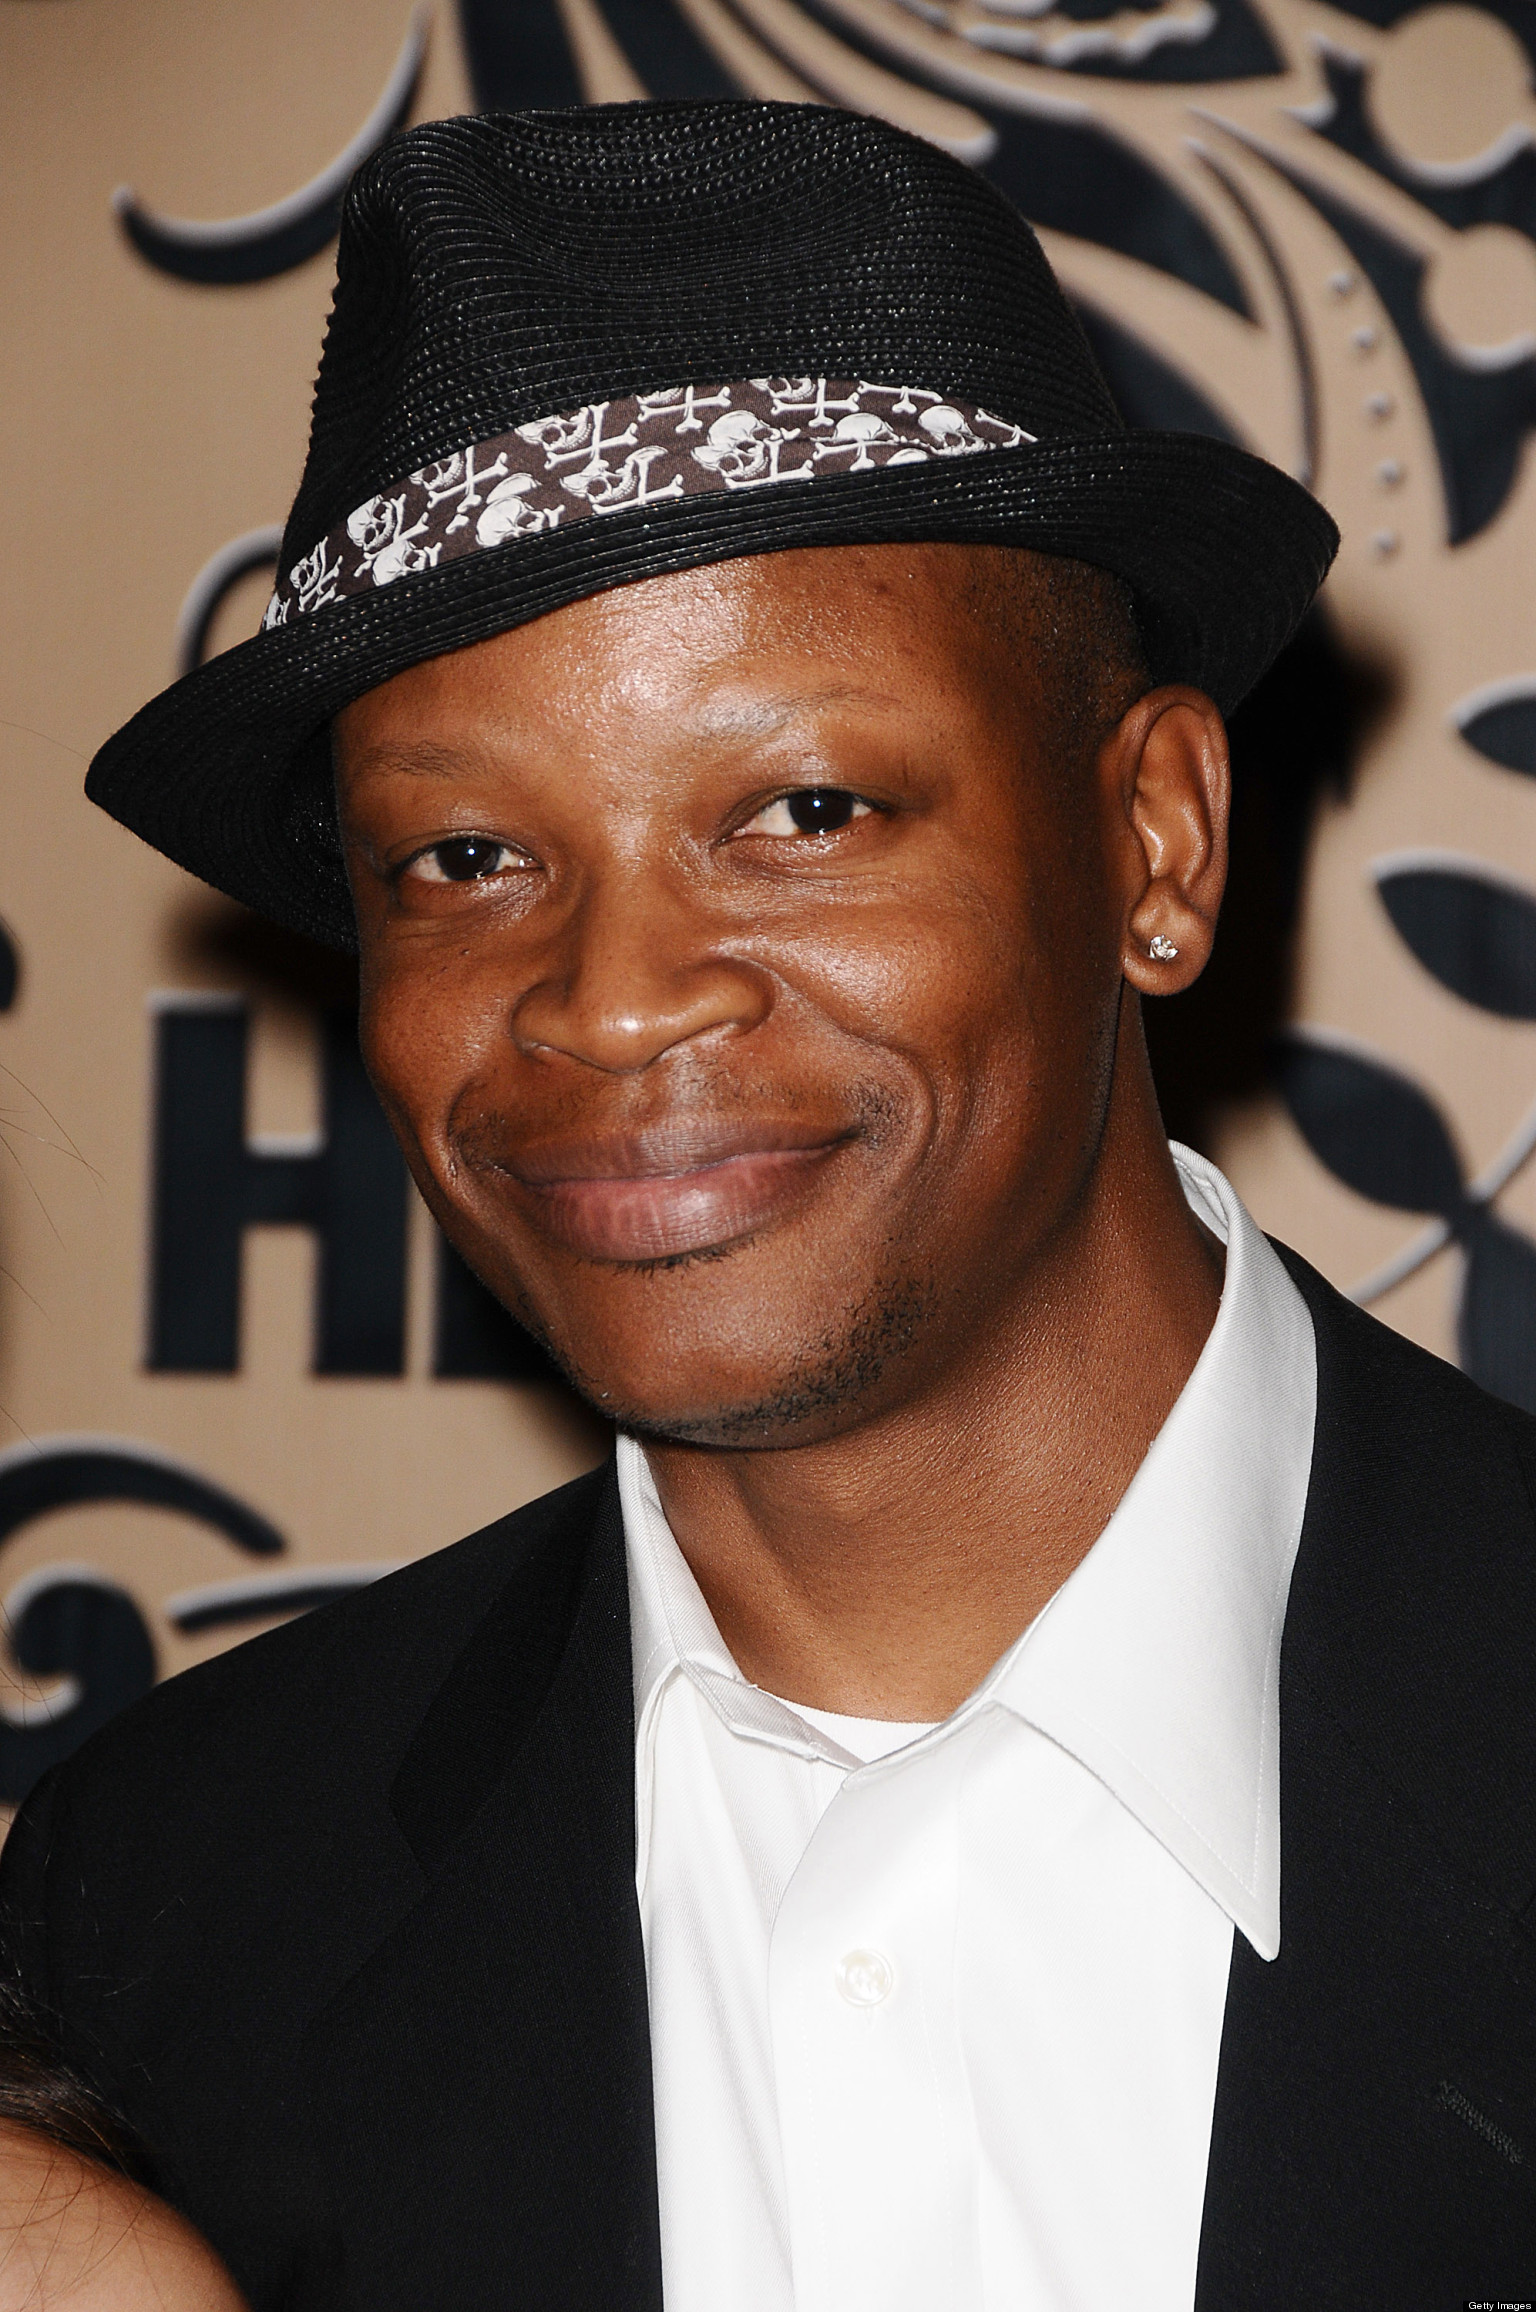 Lawrence Gilliard Jr. earned a  million dollar salary - leaving the net worth at 2 million in 2018